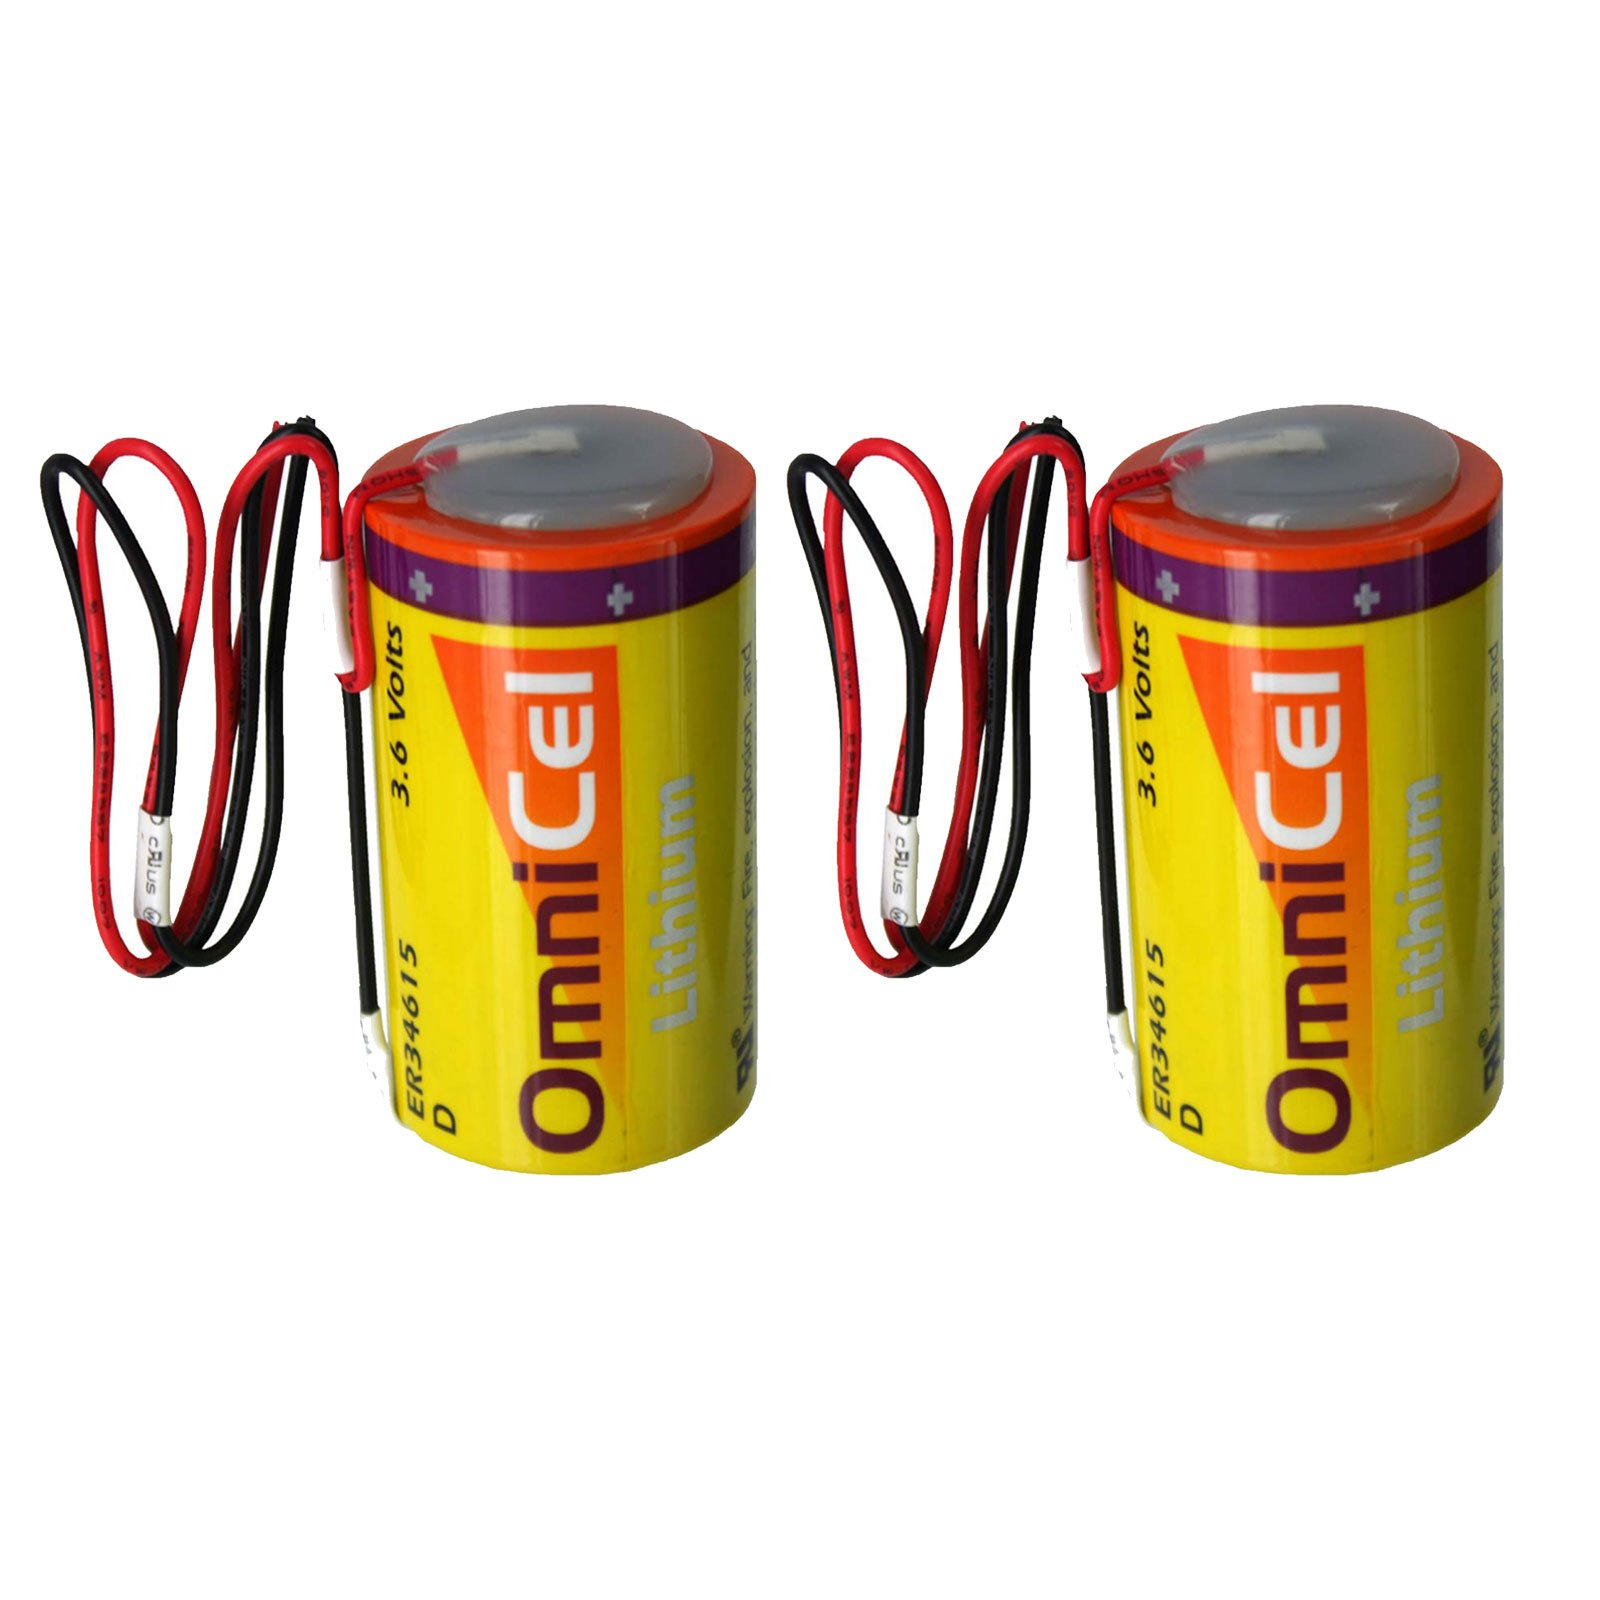 2x OmniCel ER34615 3.6V 19Ah Size D Lithium Battery with Wire Leads For Intrusion Sensors, Invisible Fencing,RFID Tracking, Asset Tracking, Theft Prevention, Locator Beacons, Fleet Monitoring by Exell Battery